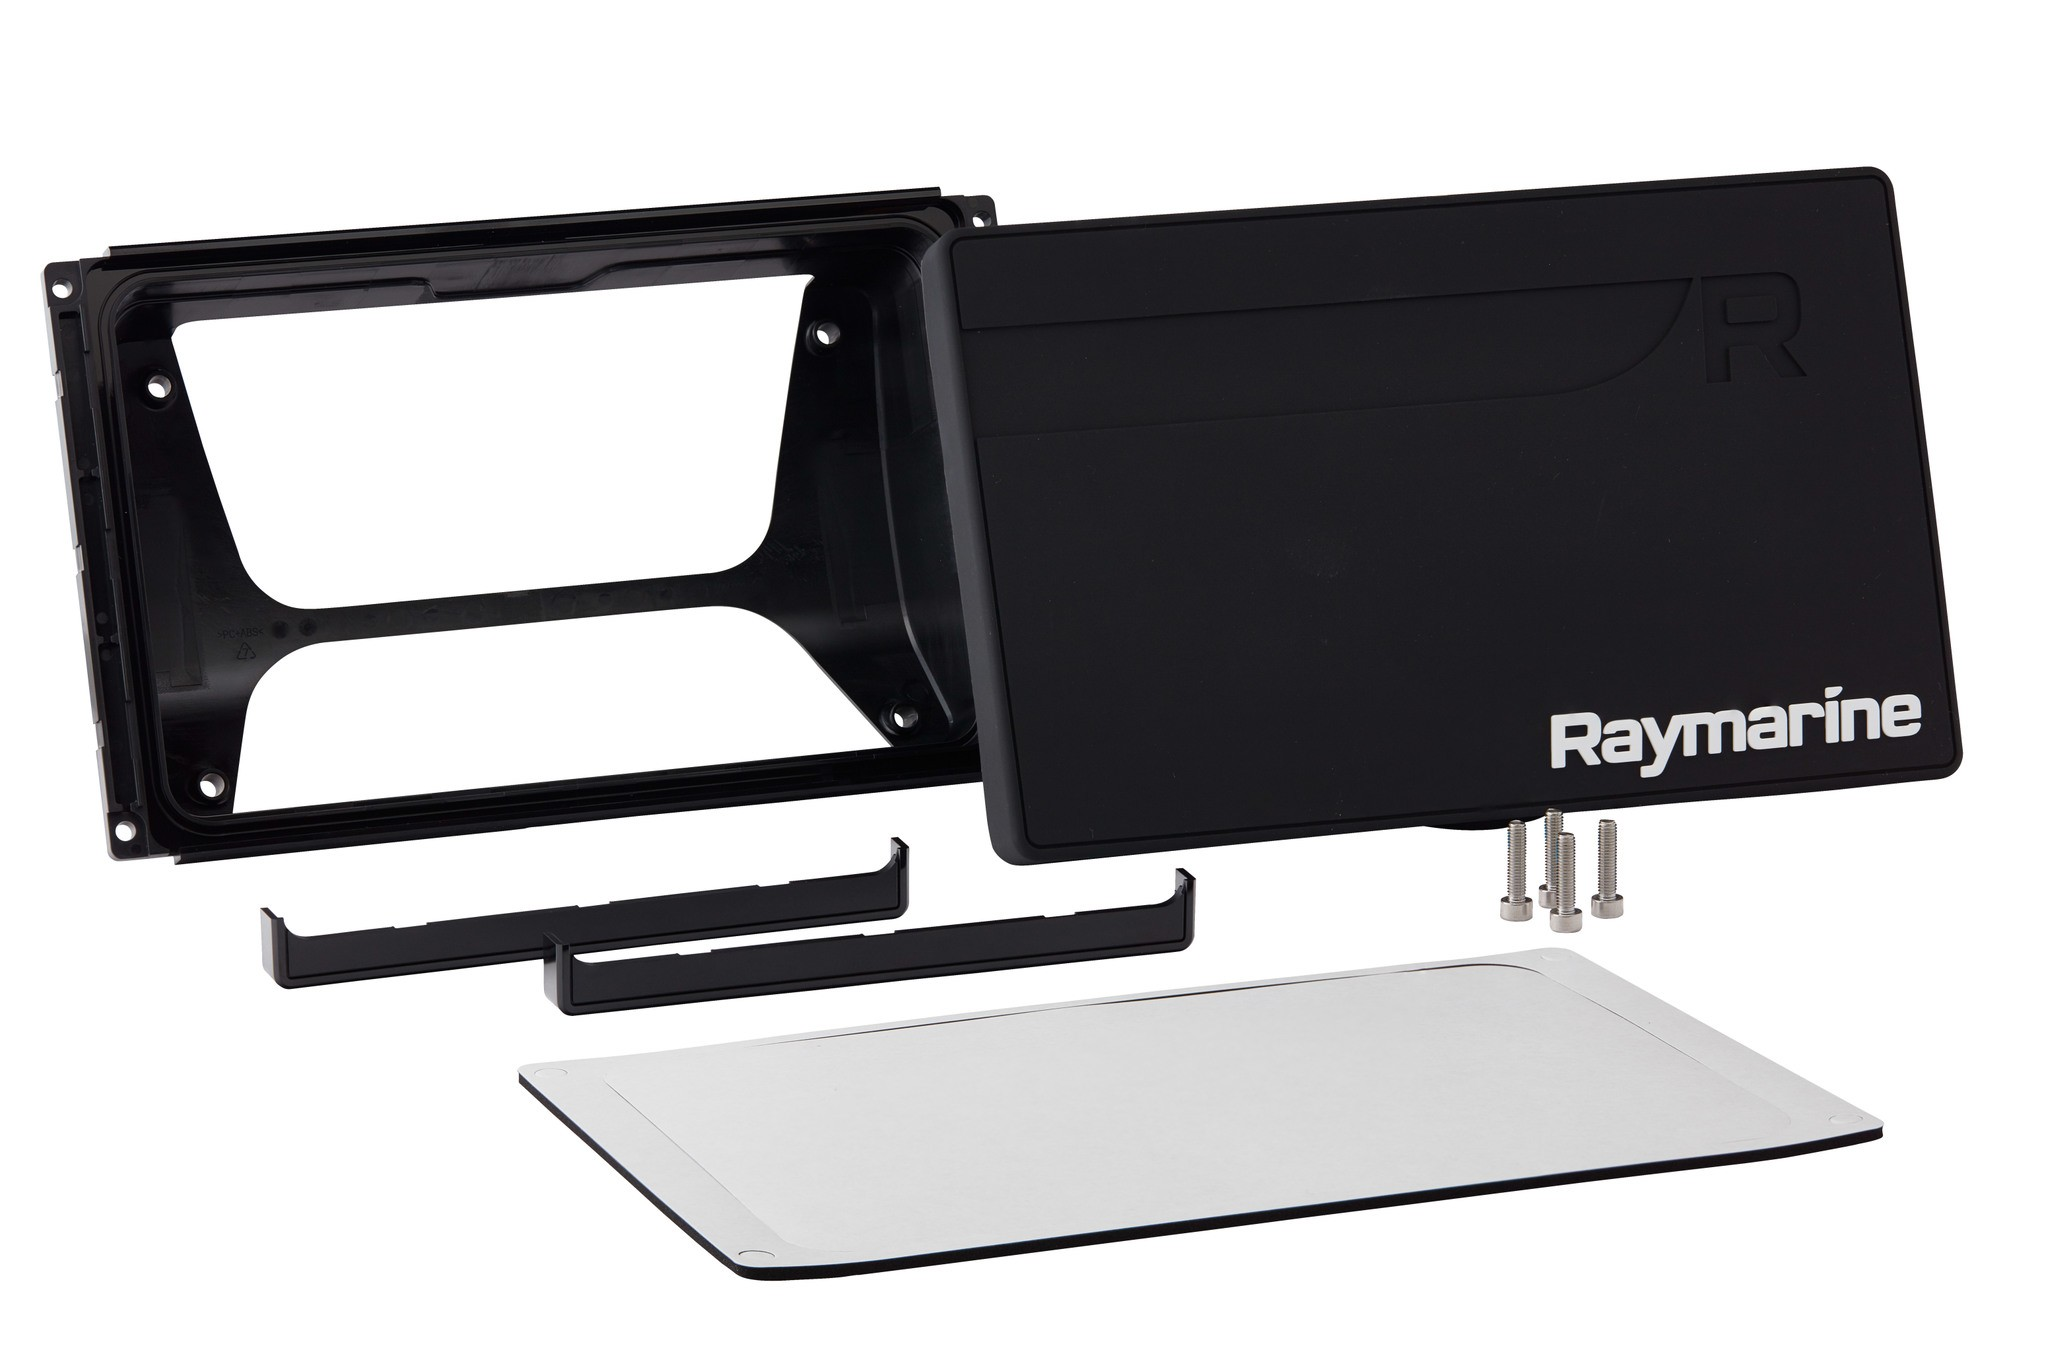 Raymarine Front Mount Kit W/Suncover for Axiom 9 - # A80500